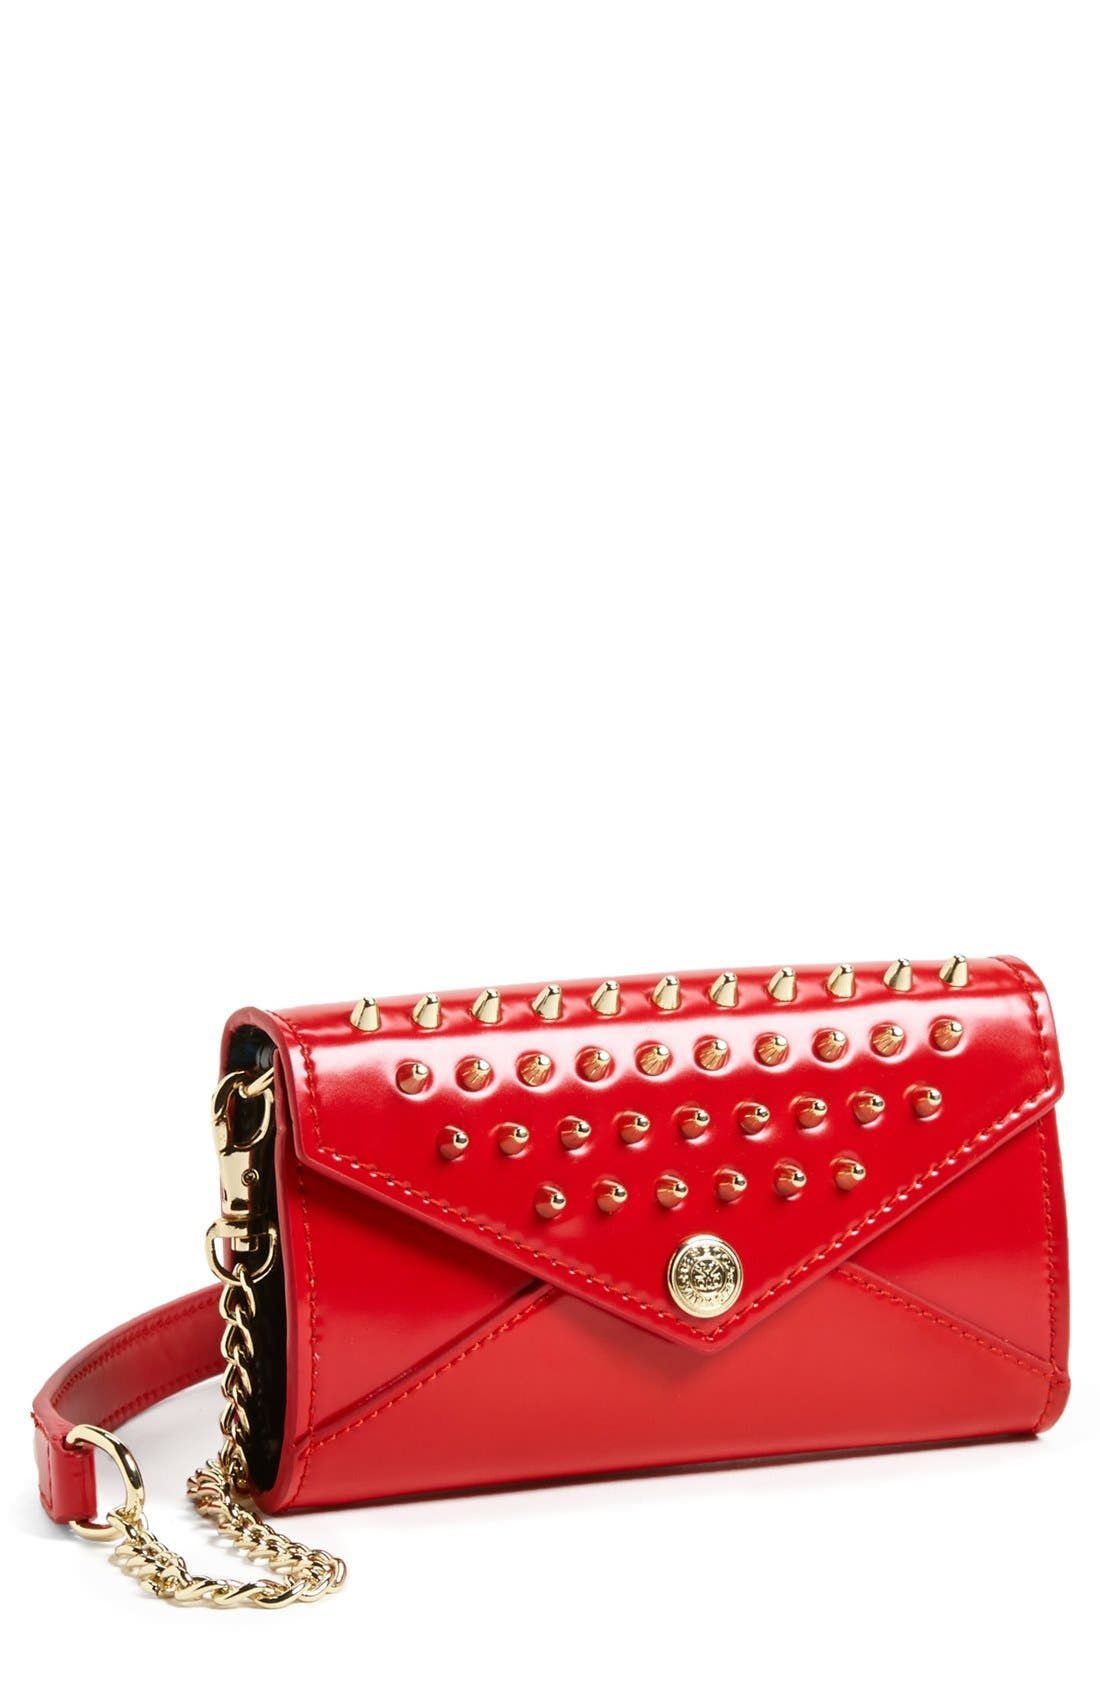 Main Image - Rebecca Minkoff 'Studded Wallet on a Chain - Mini' Crossbody Bag